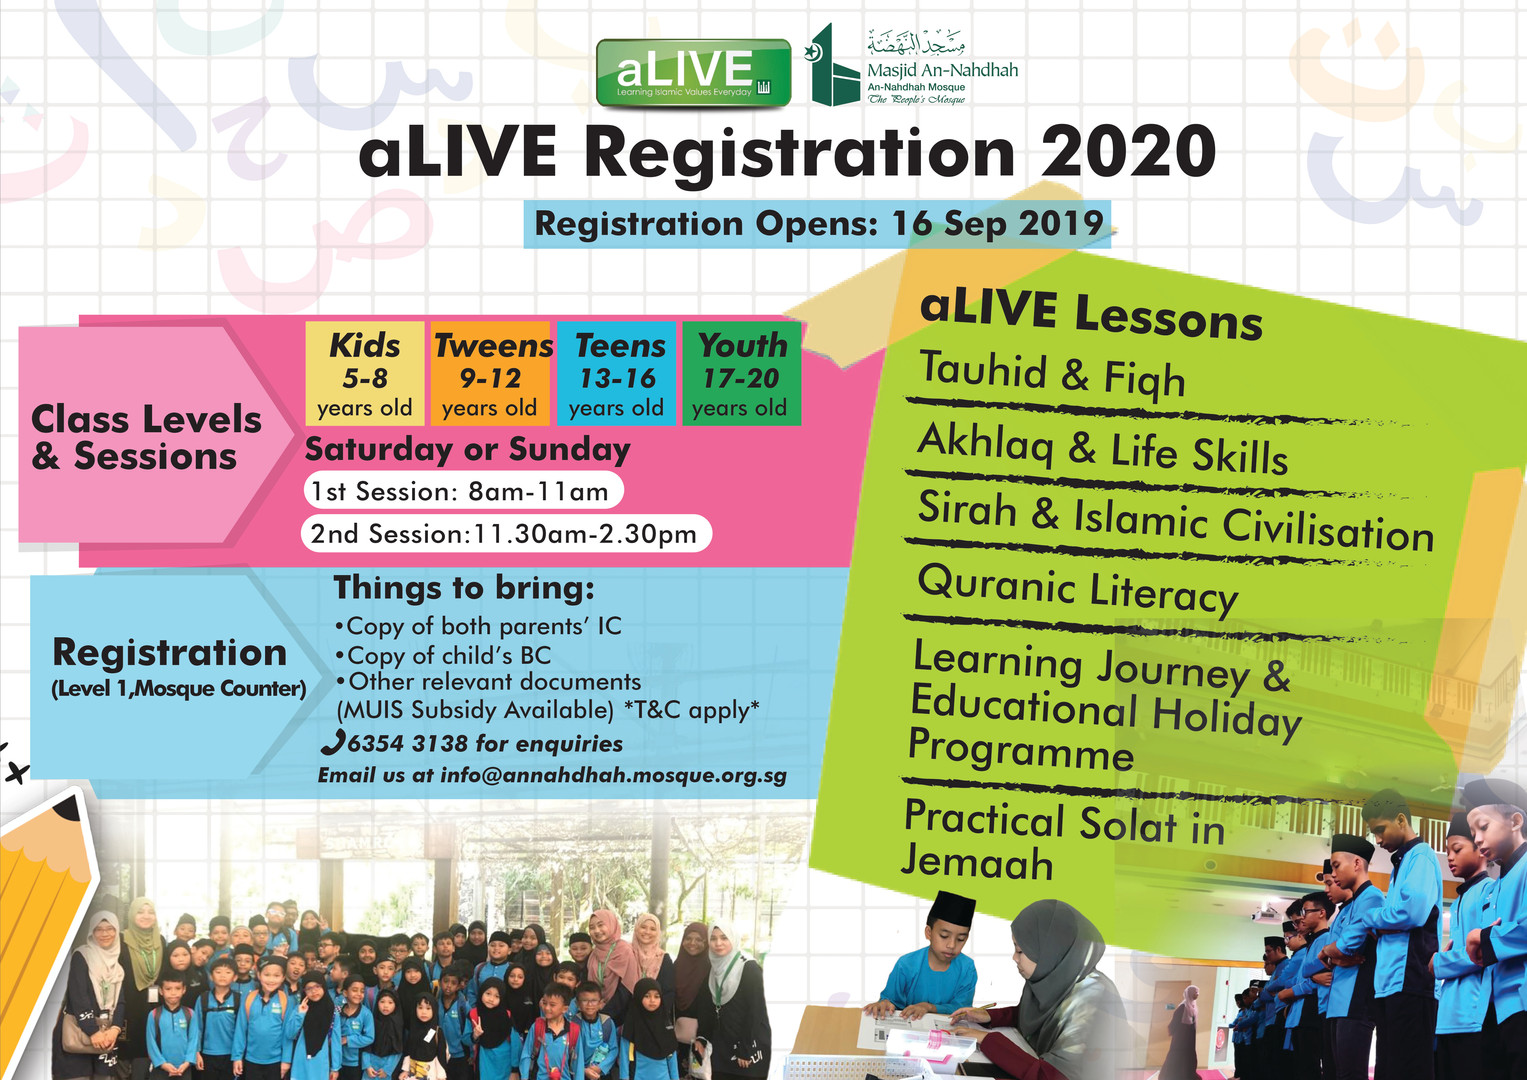 alive registration 2020 a3.jpg